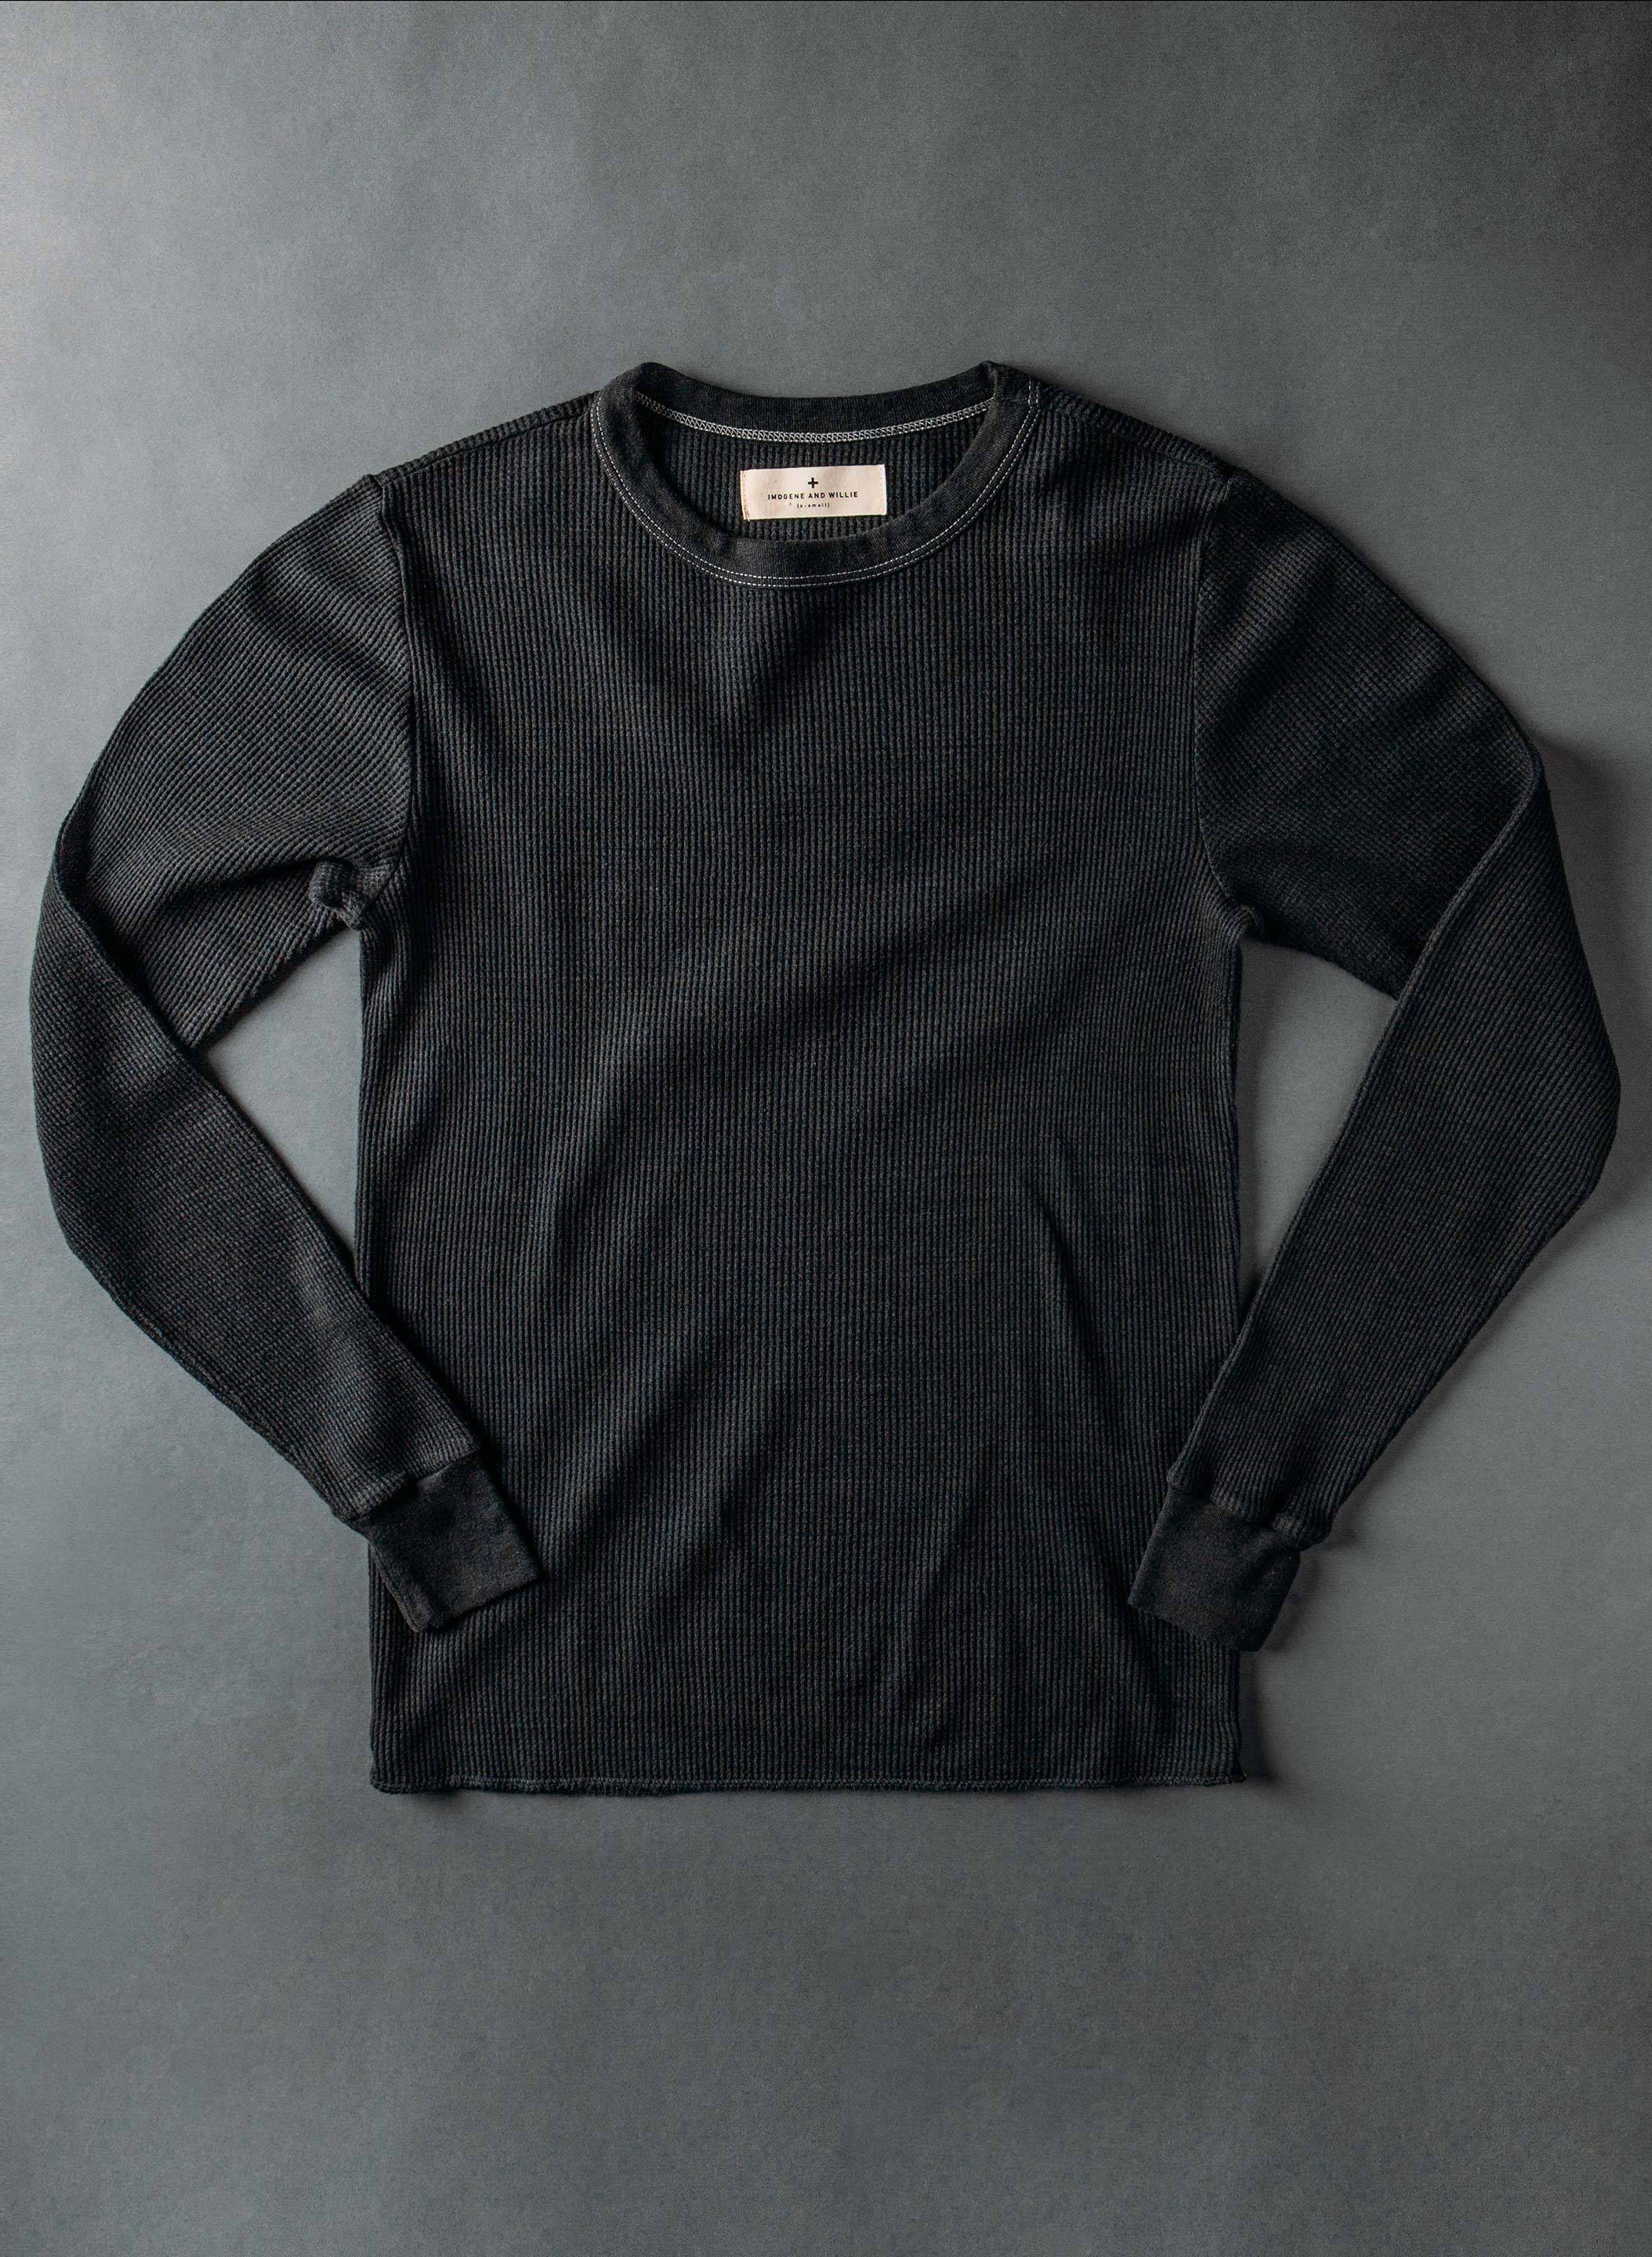 imogene + willie - thermal crew in black